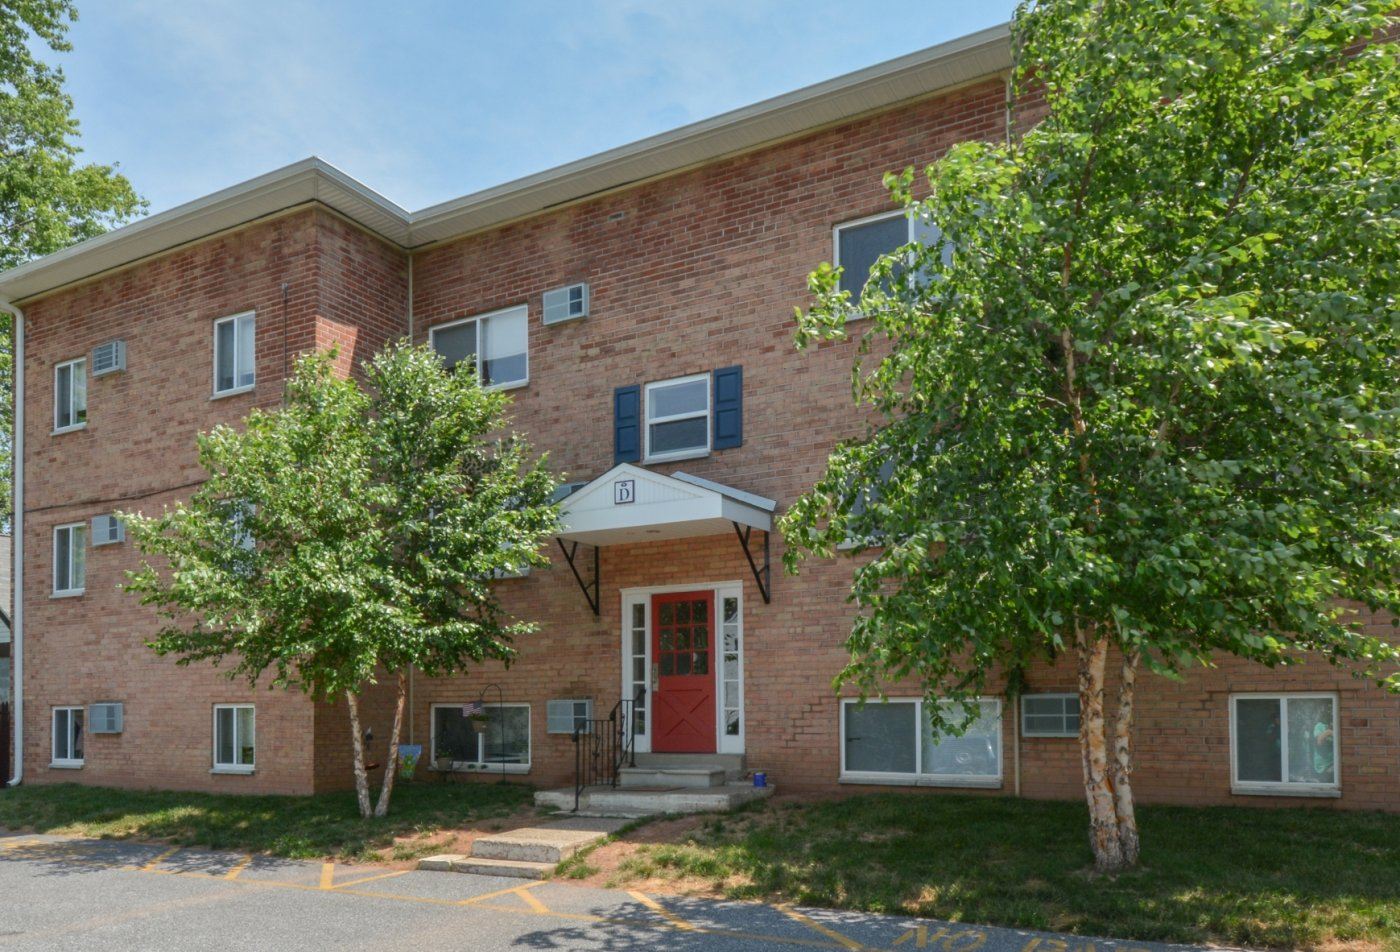 Apartment Homes in Boothwyn, PA | Boothwyn Court Apartments